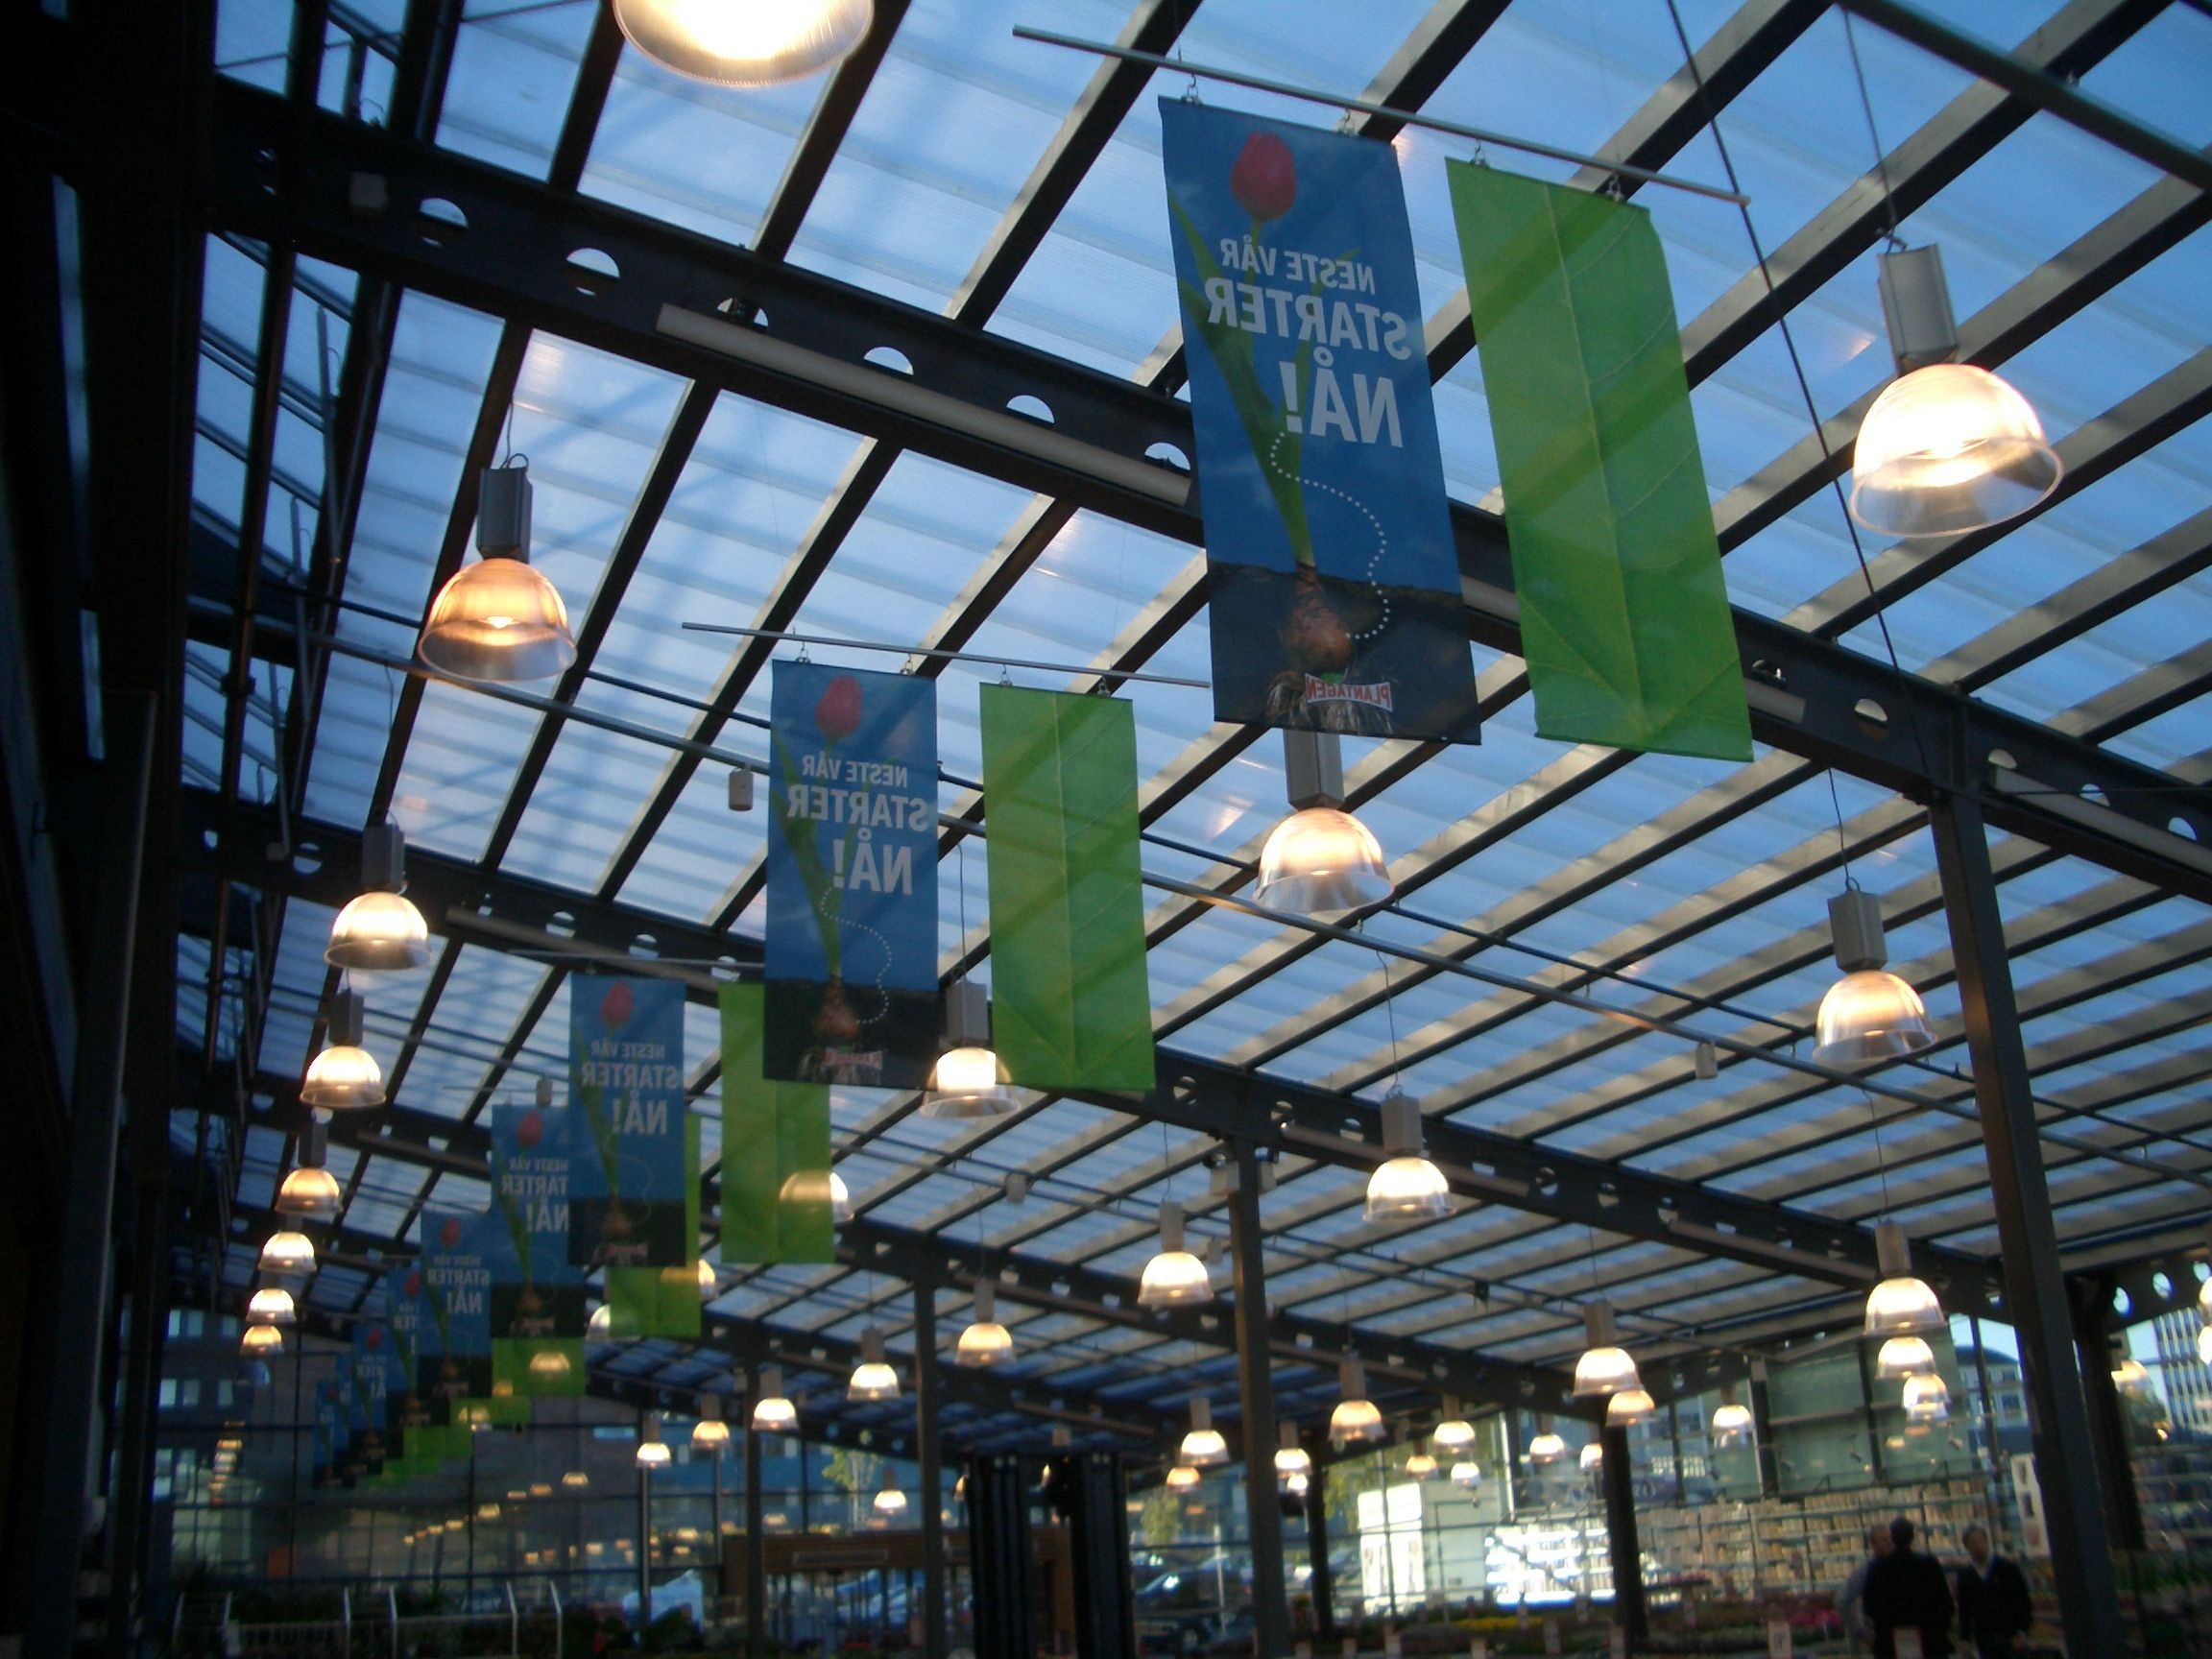 Shopping Mall Roof In Oslo With Polycarbonate U Shape Panels By Rodeca Gmbh